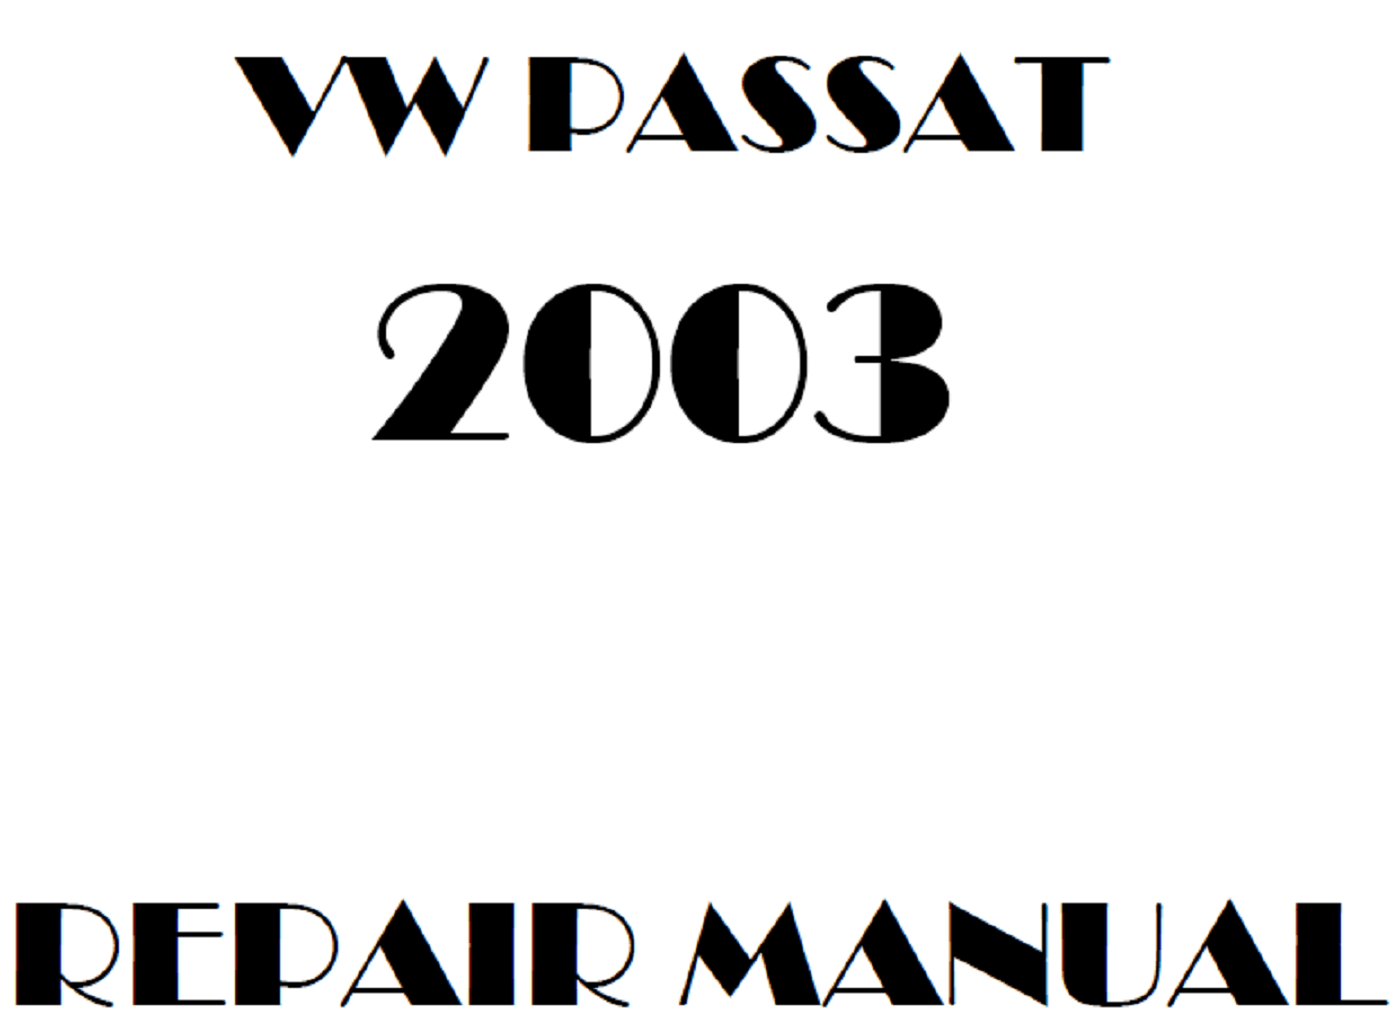 2003 Volkswagen Passat repair manual